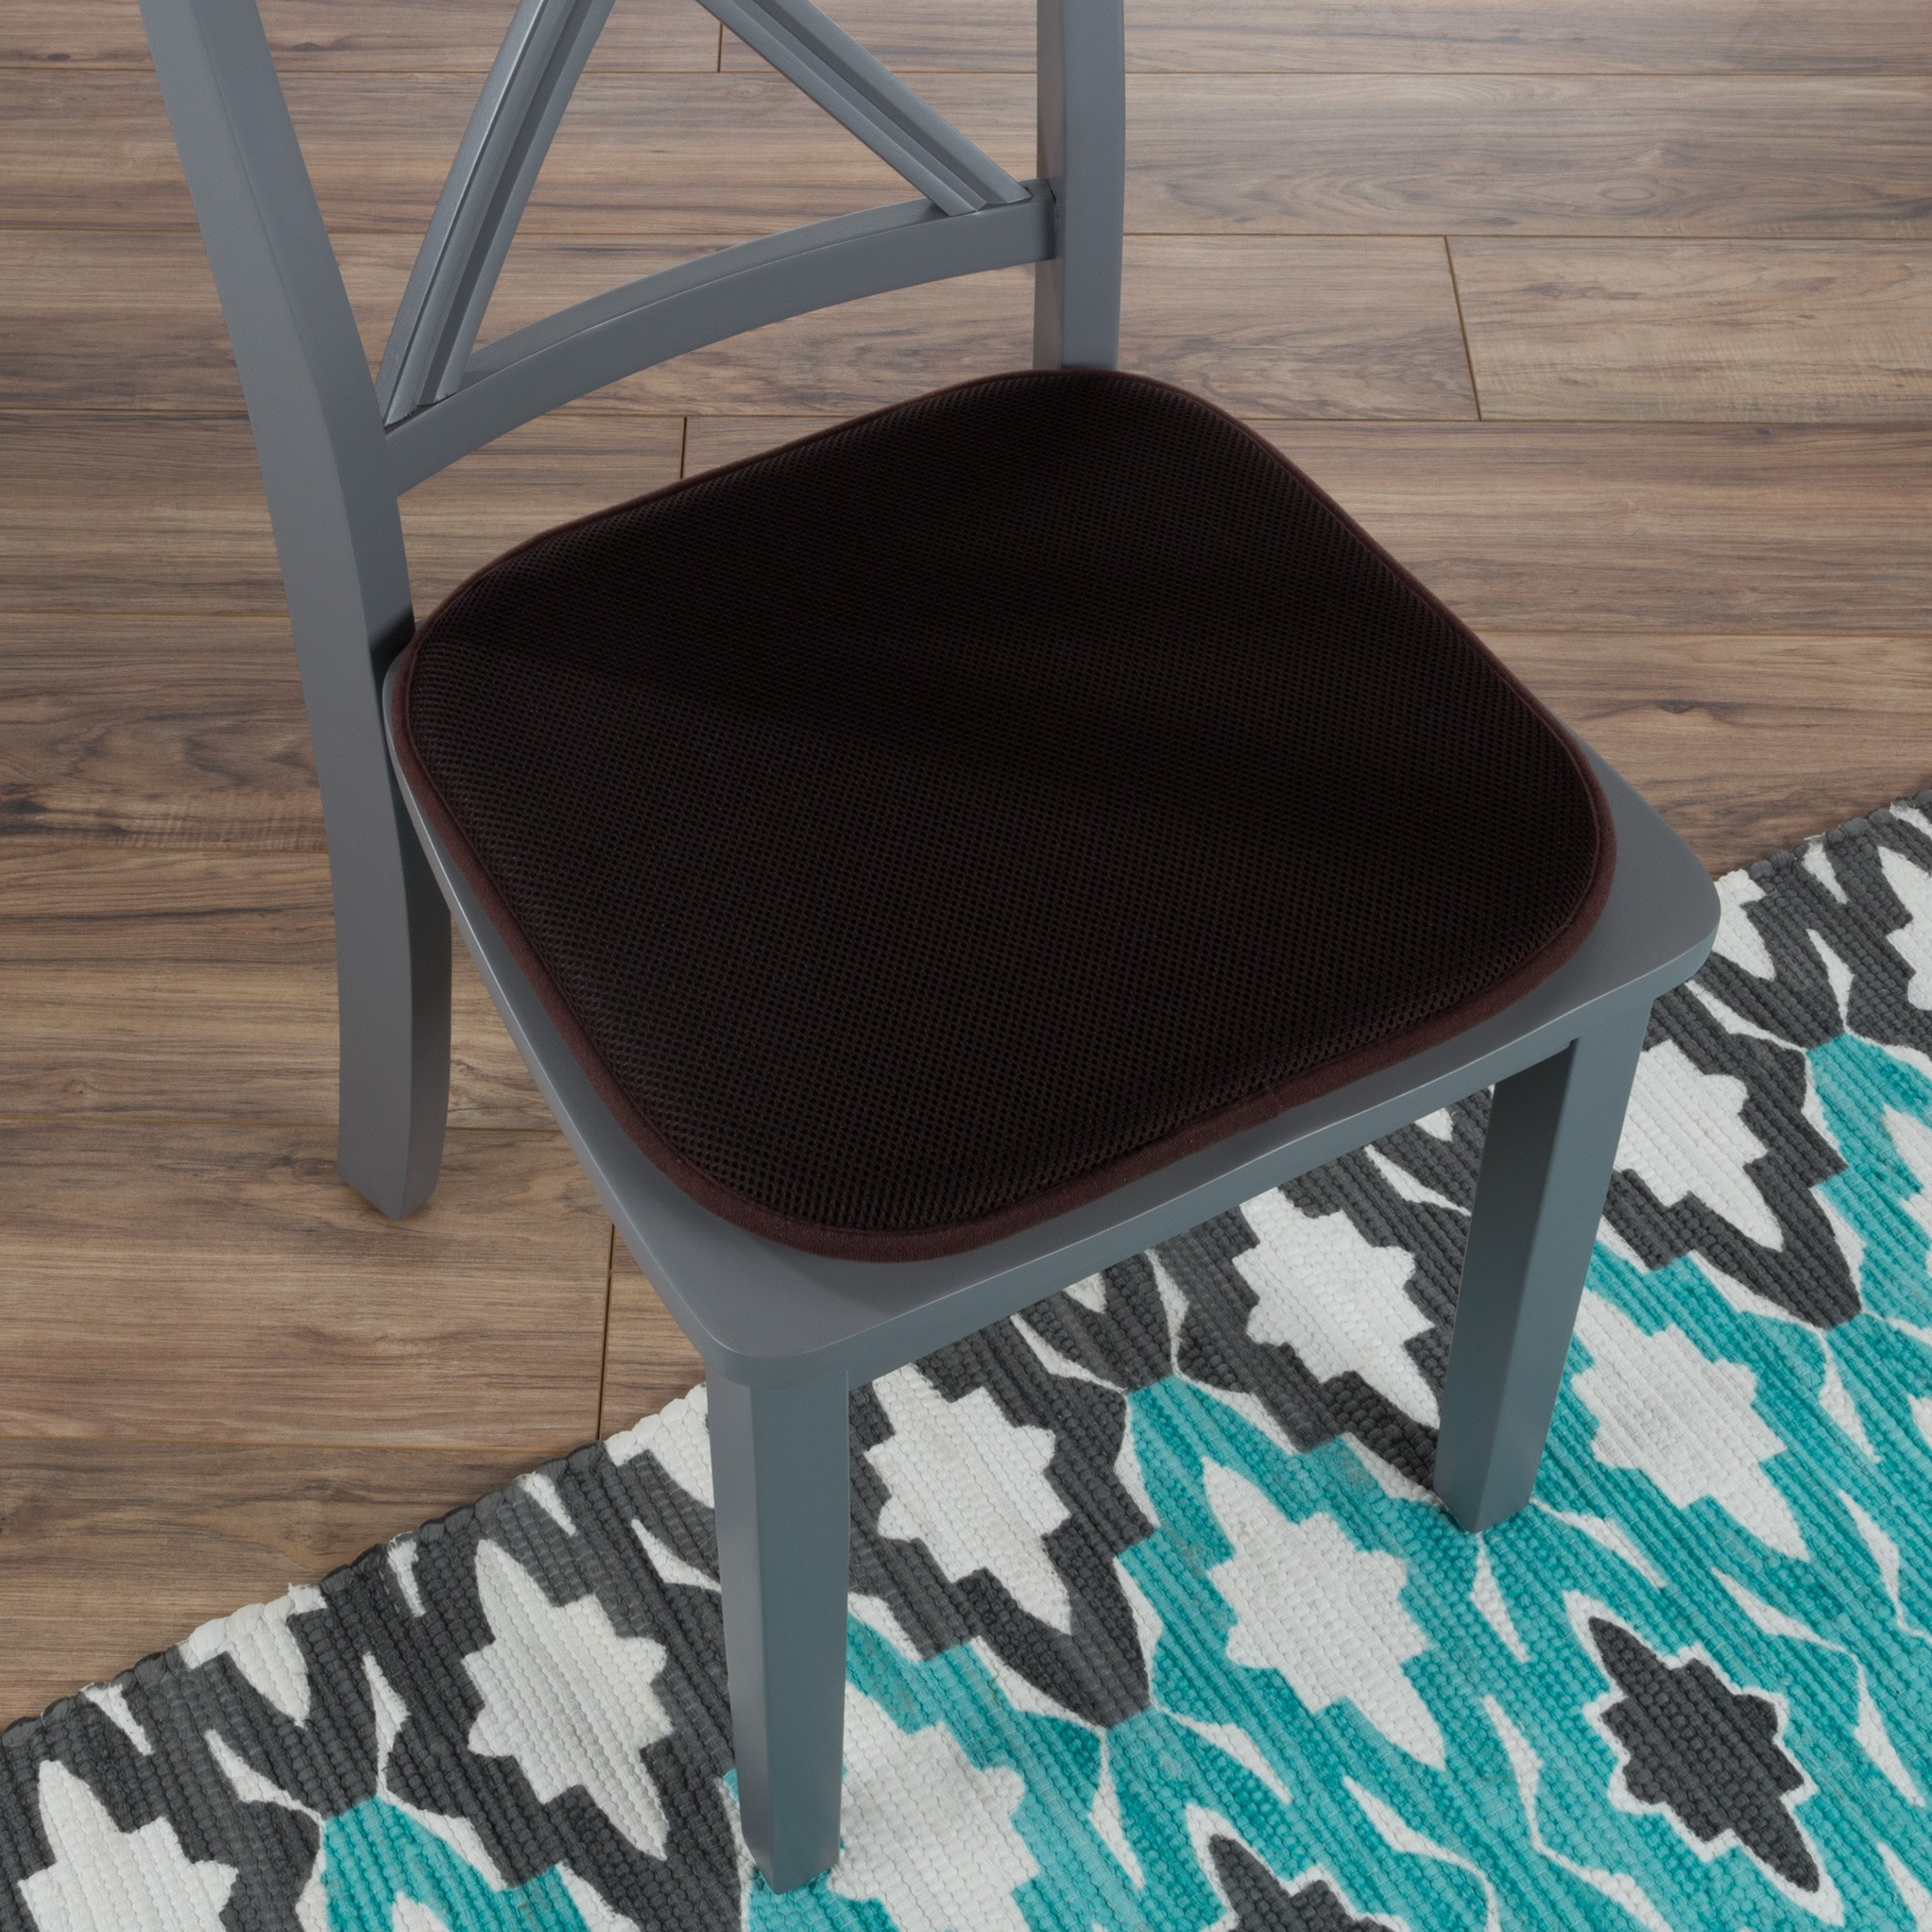 "Lavish Home 82-TEX1045BR Memory Foam Chair Cushion-Square x 16"", 16x16, Brown by Lavish Home (Image #1)"